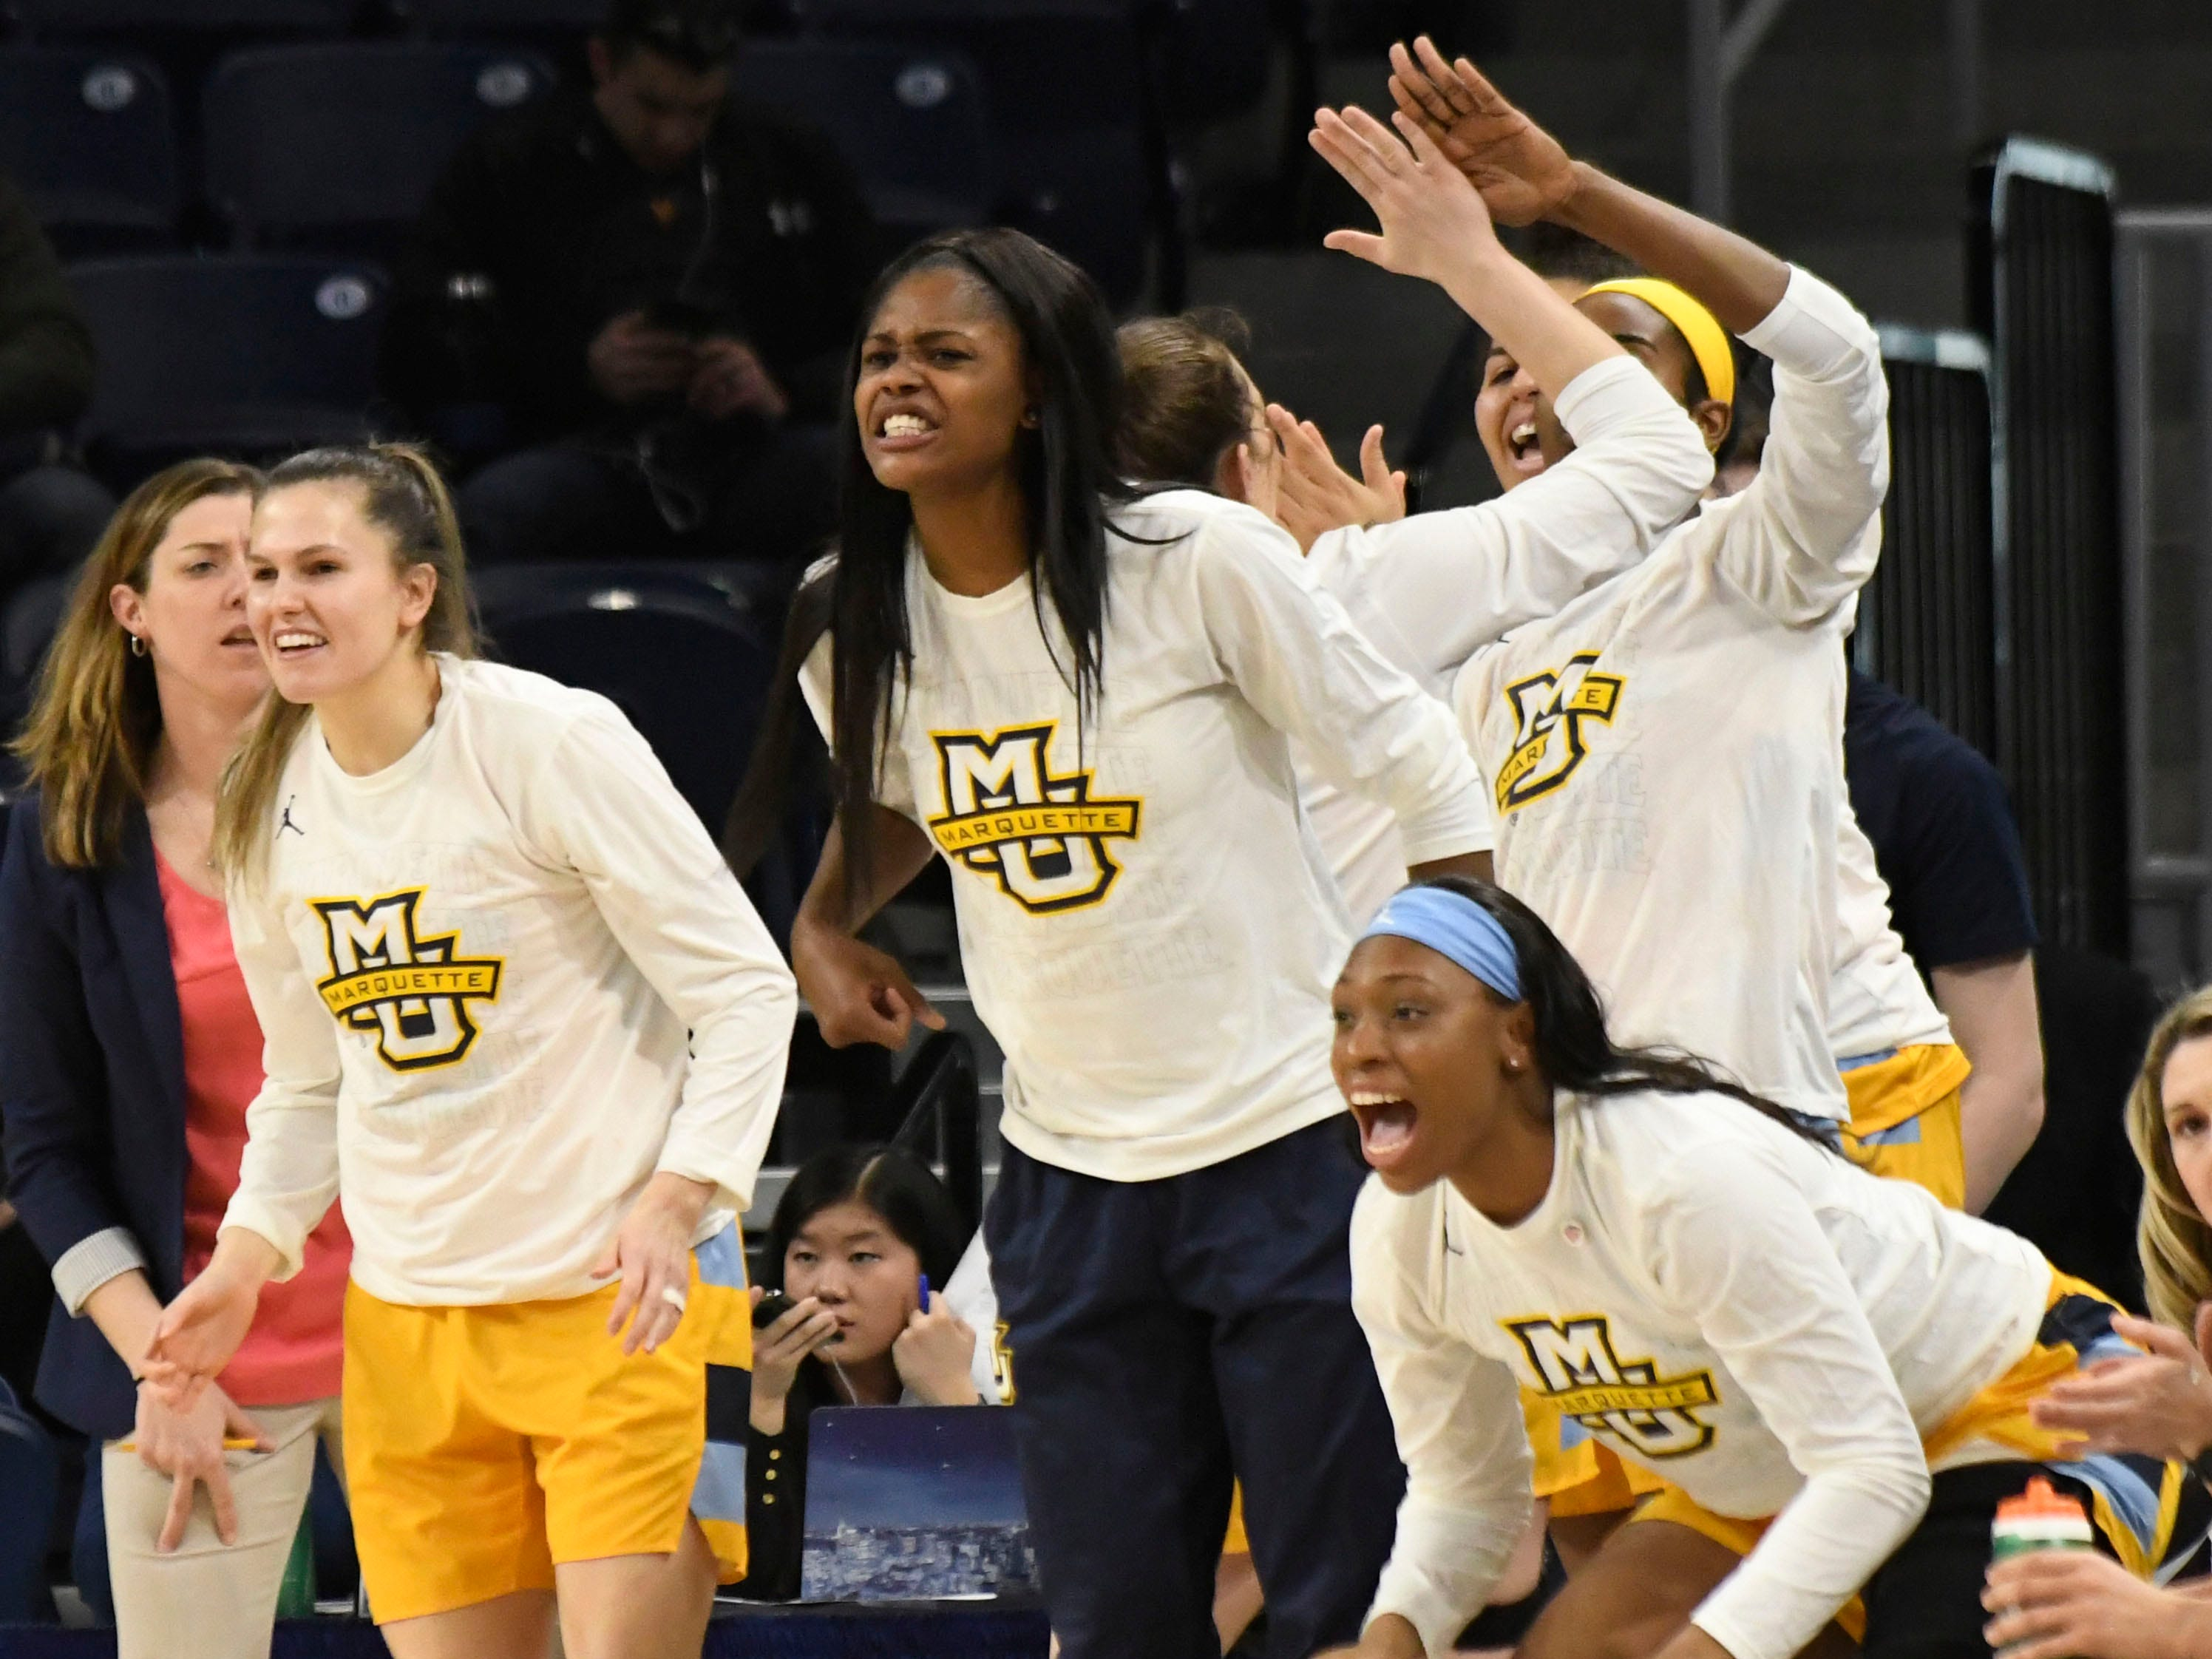 The Marquette bench celebrates a three-point basket in the first half at the Big East tournament in Chicago.